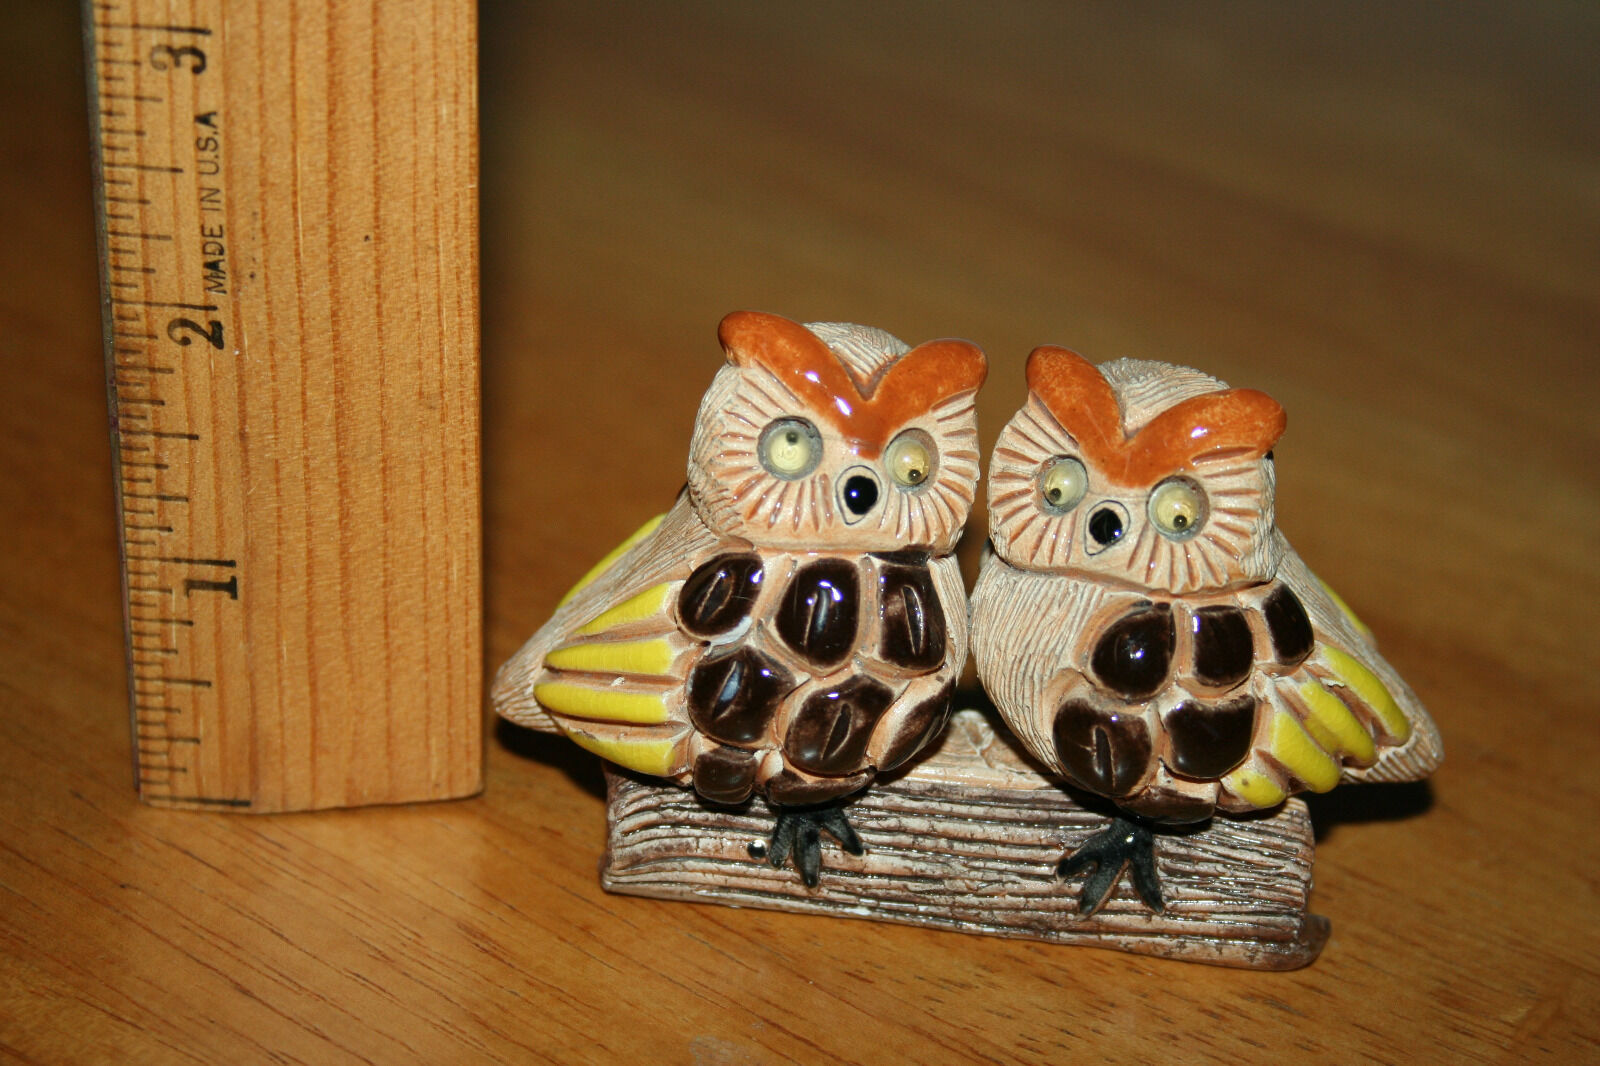 Owls on Log Figurine Two Owls on a Log with Googly Eyes Ceramic Figurine